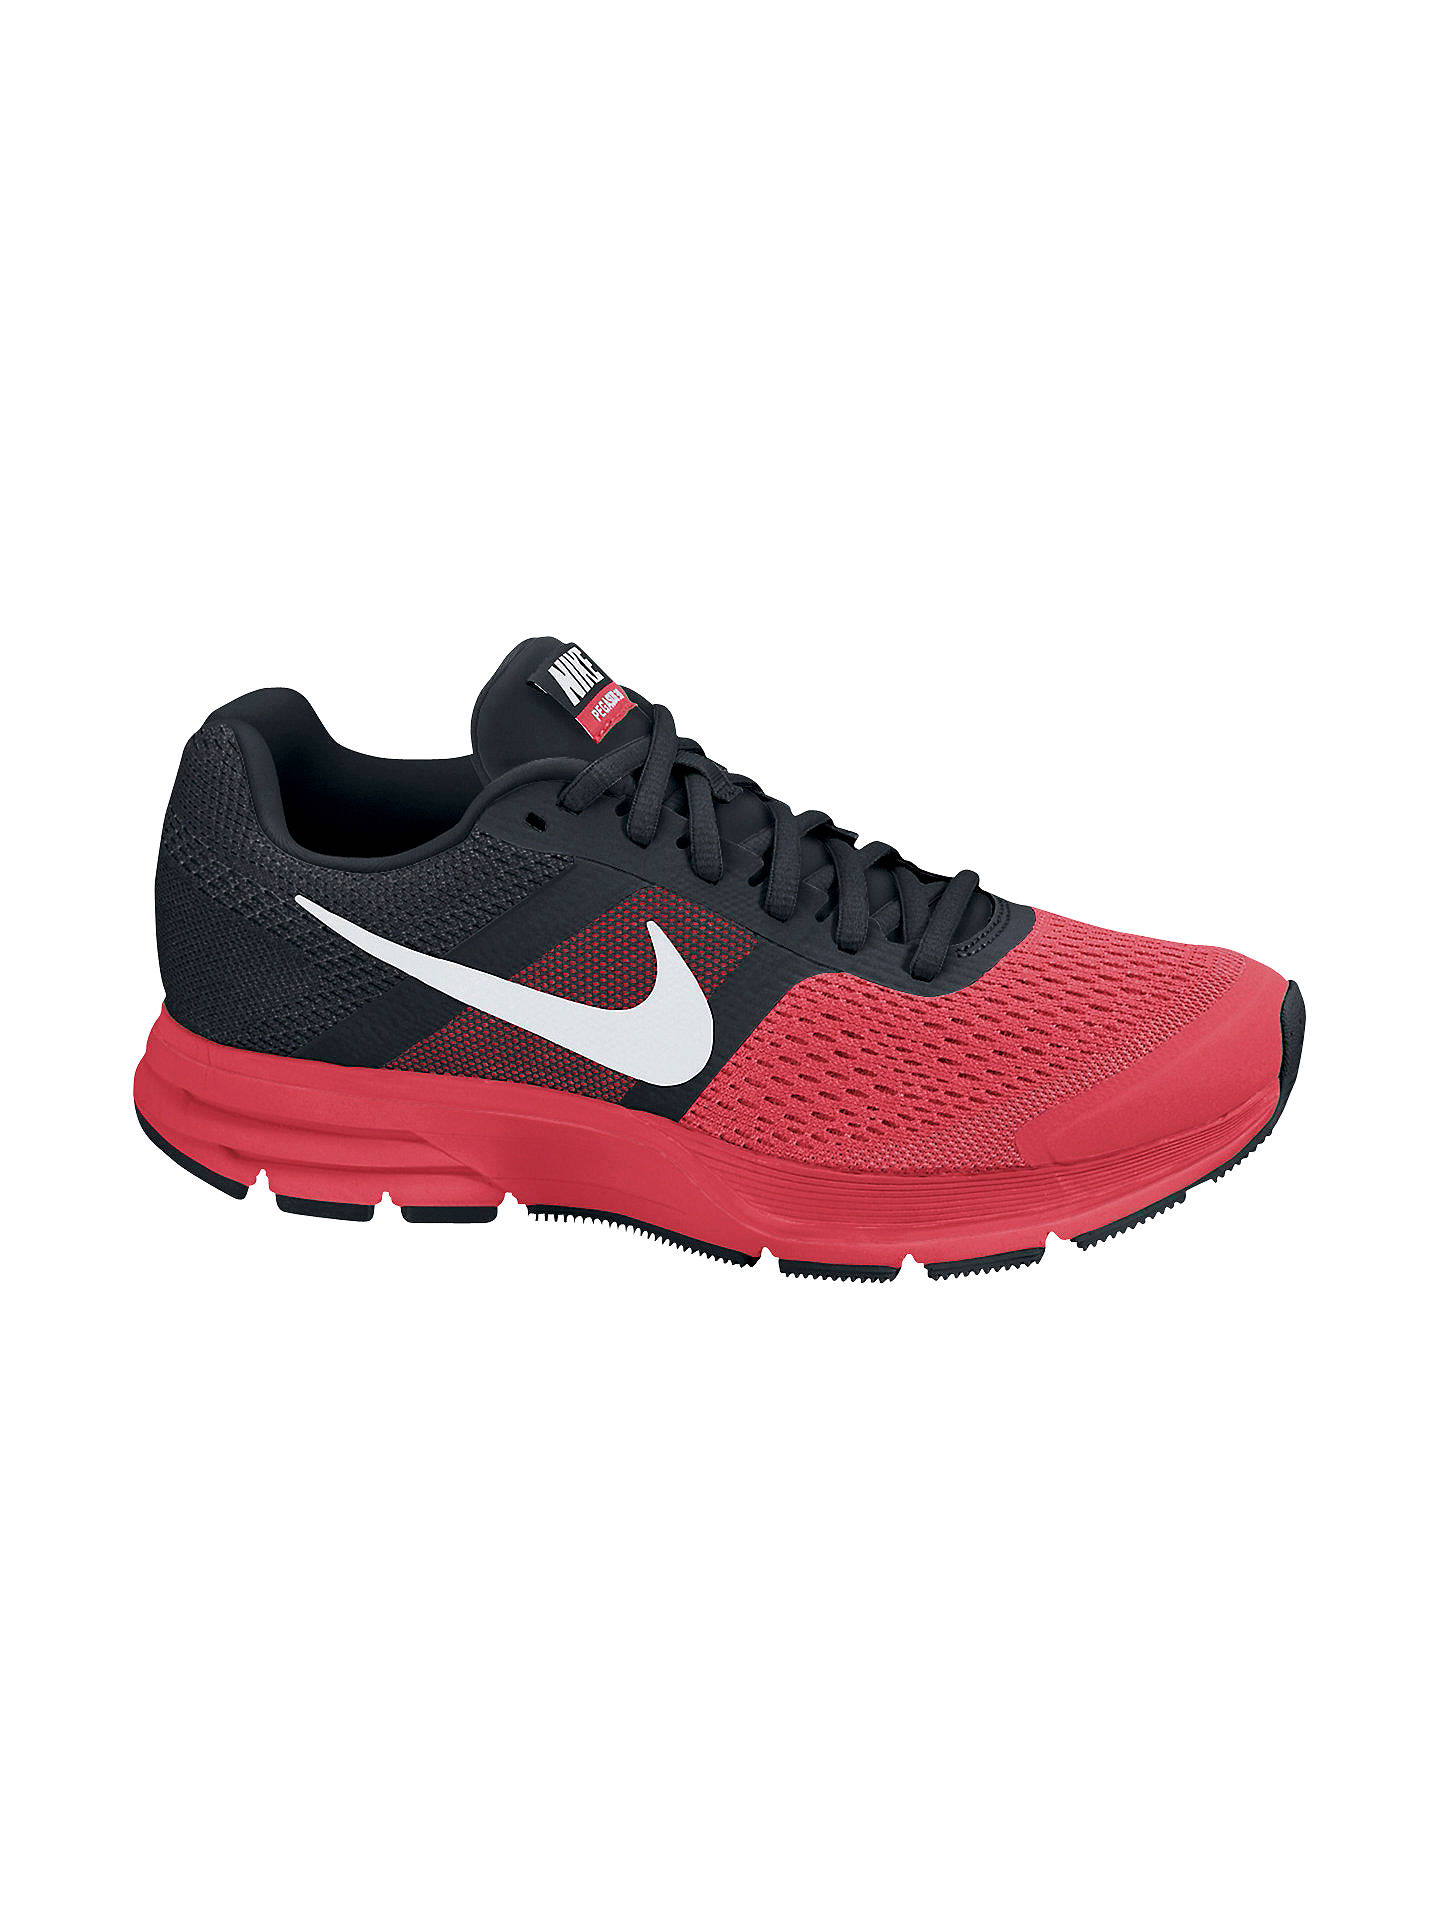 more photos d692b df560 Buy Nike Air Pegasus+ 30 Women's Running Shoes, Red/Black, 4 Online at